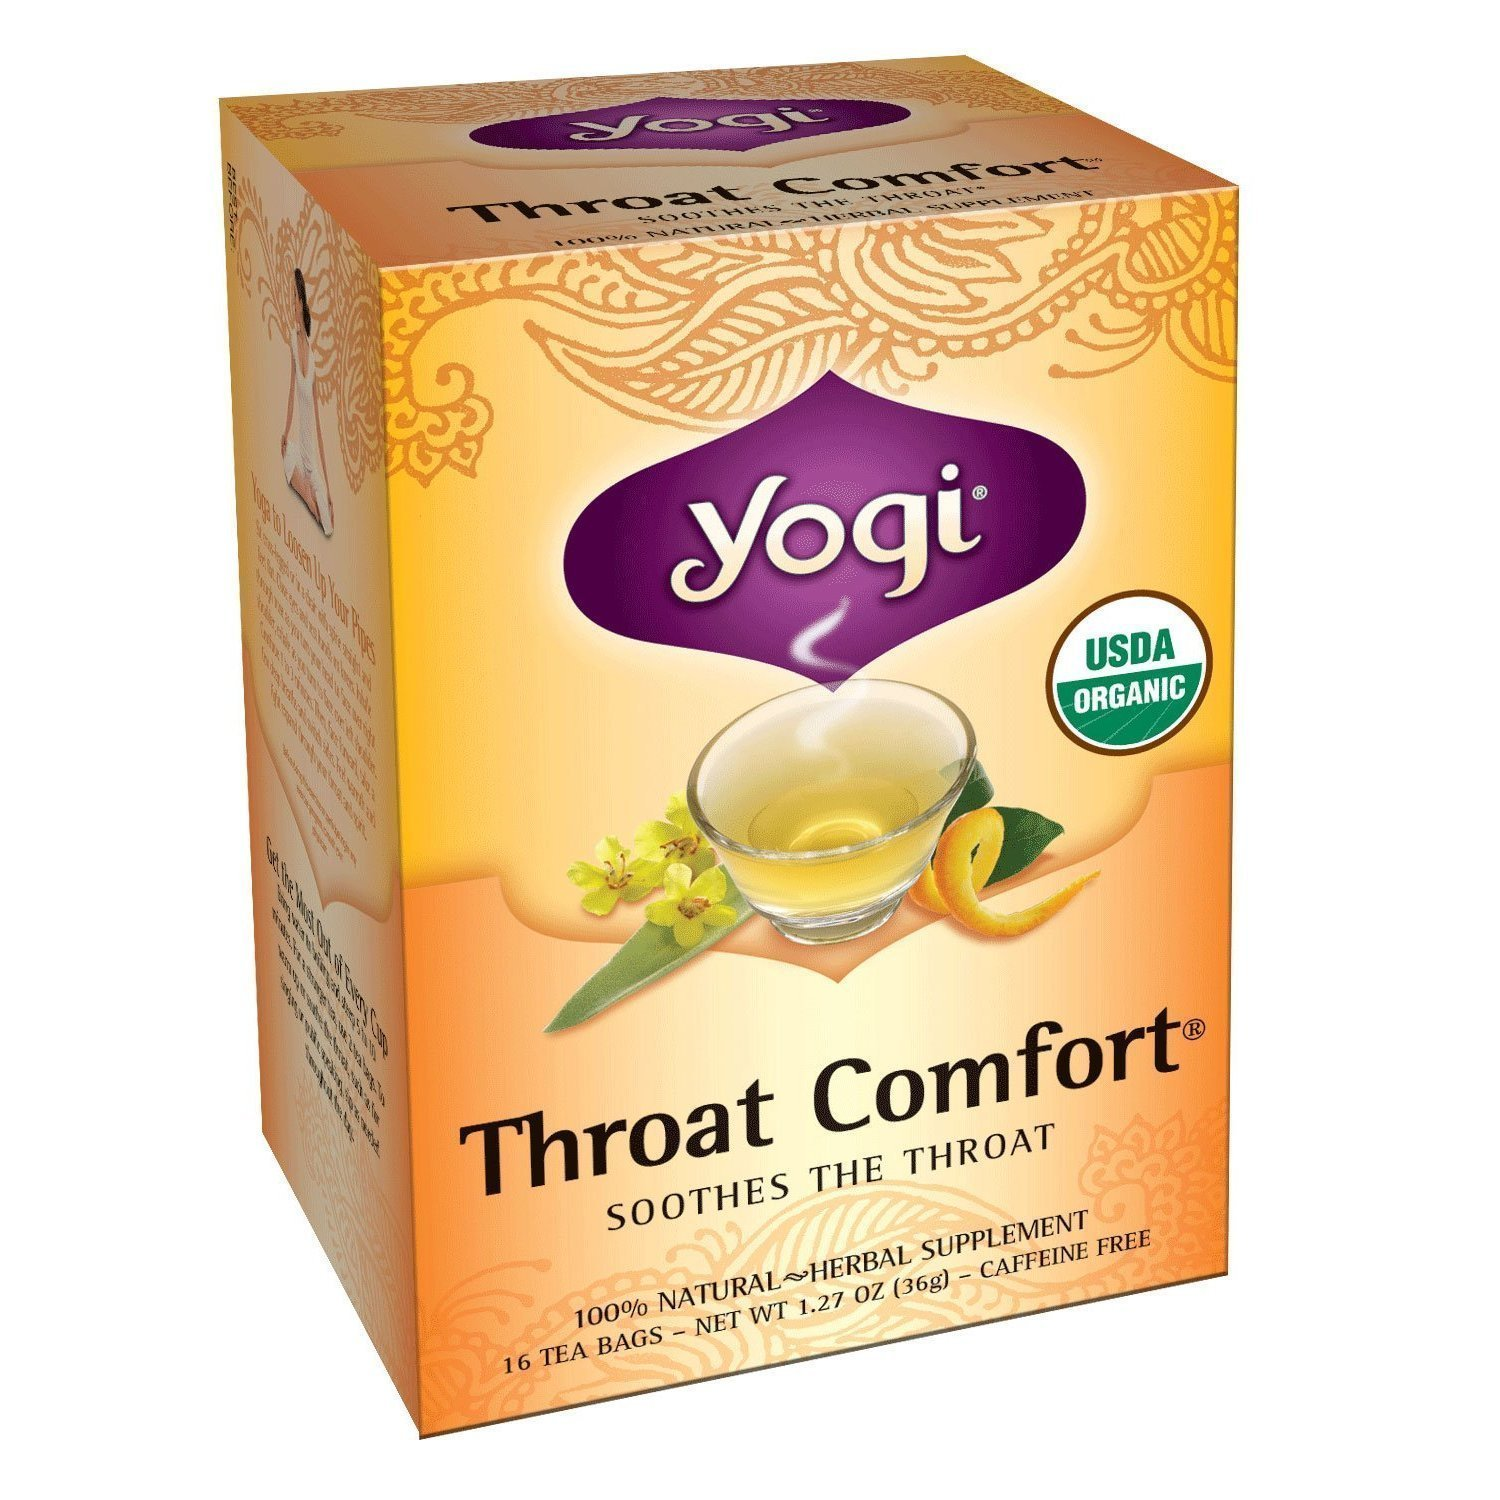 Yogi Throat Comfort Tea (3x16 bag)